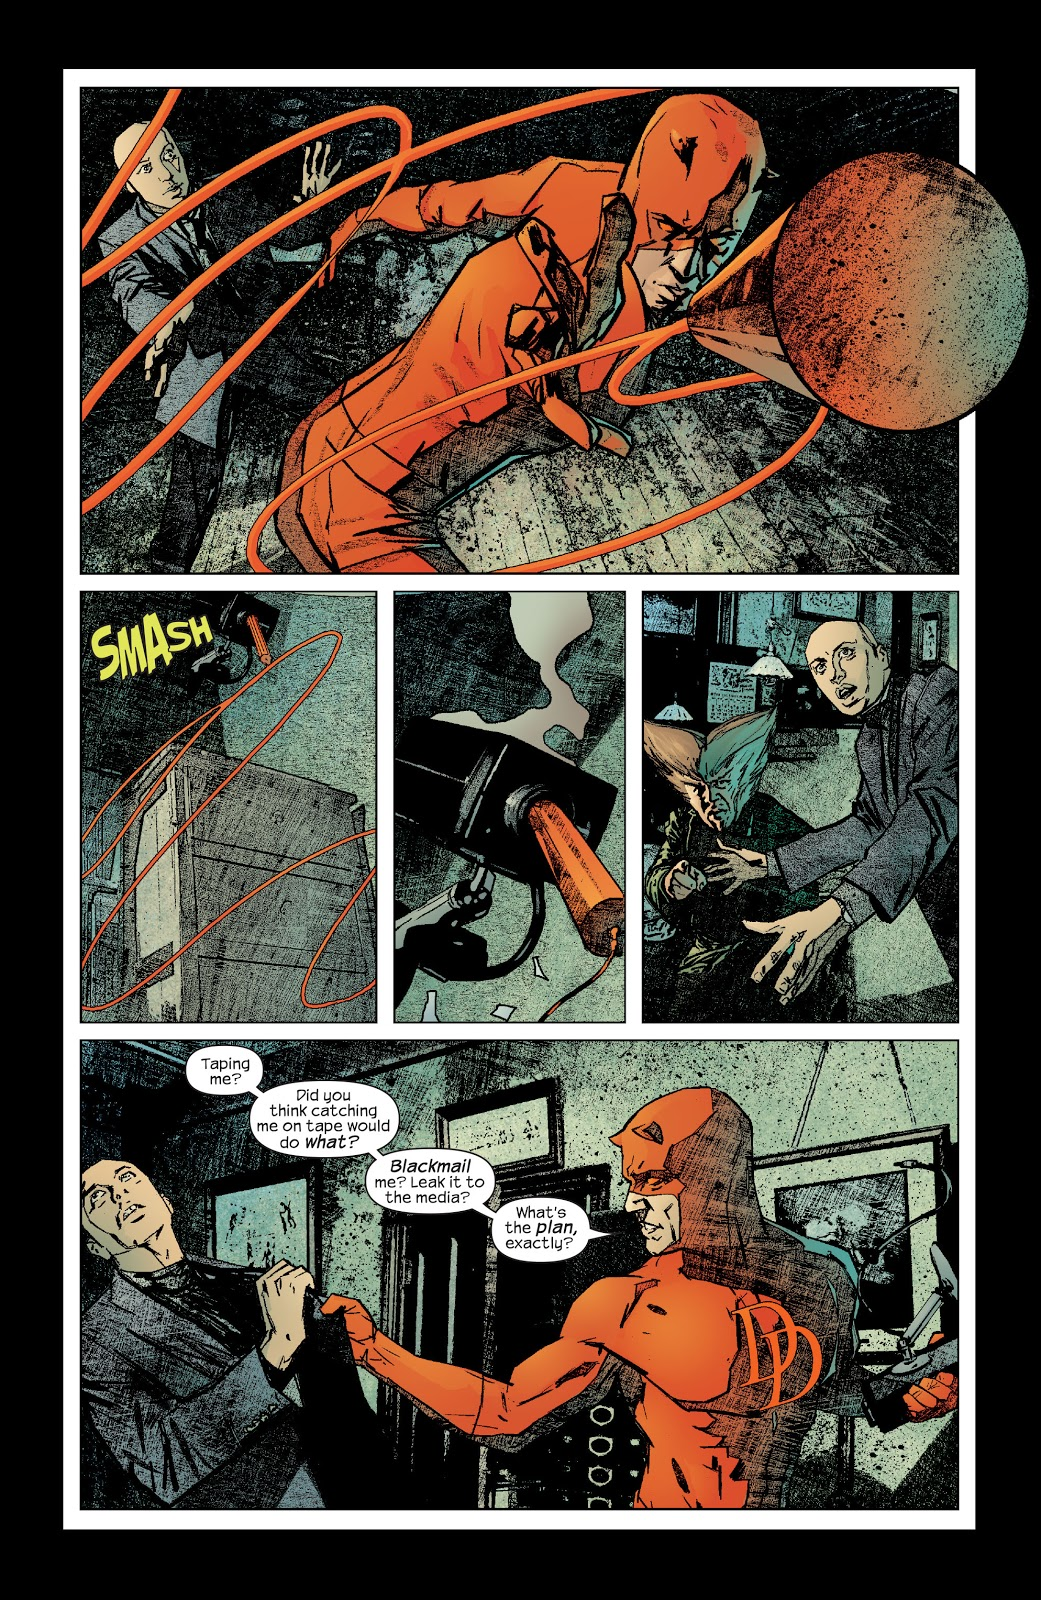 Daredevil Lowlife review